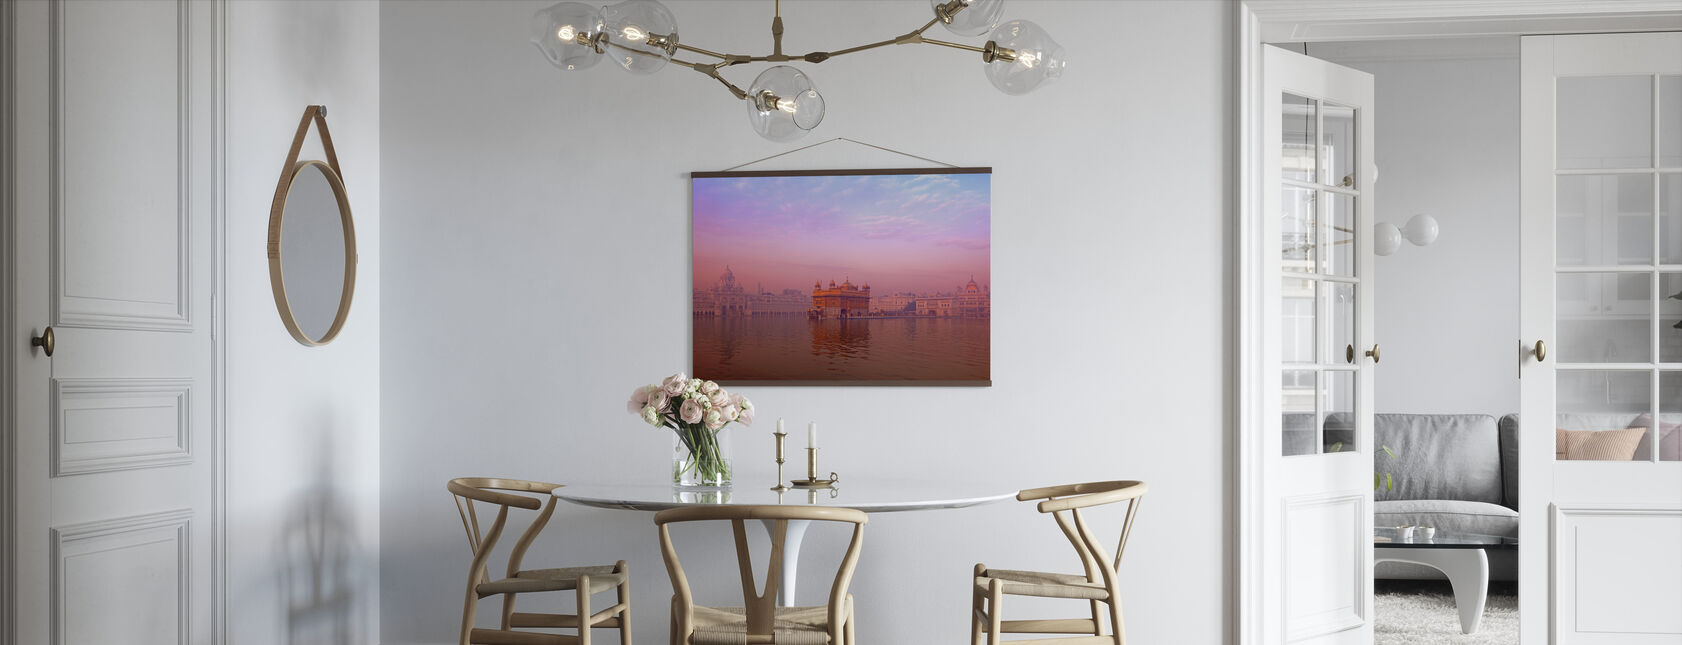 Dawn at The Golden Temple - Poster - Kitchen